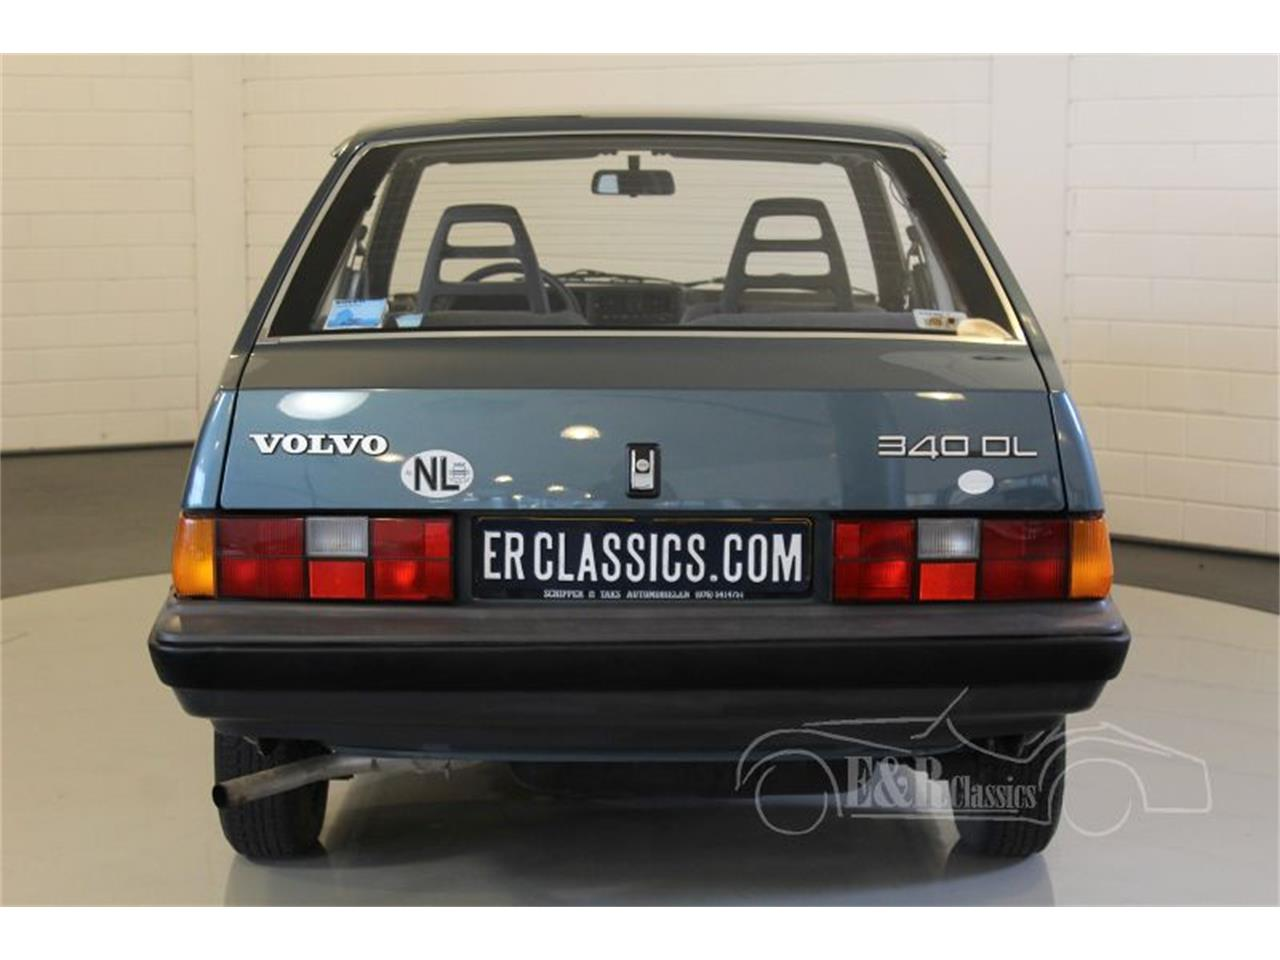 Large Picture of '88 Volvo 340 DL - $11,350.00 Offered by E & R Classics - LDMX